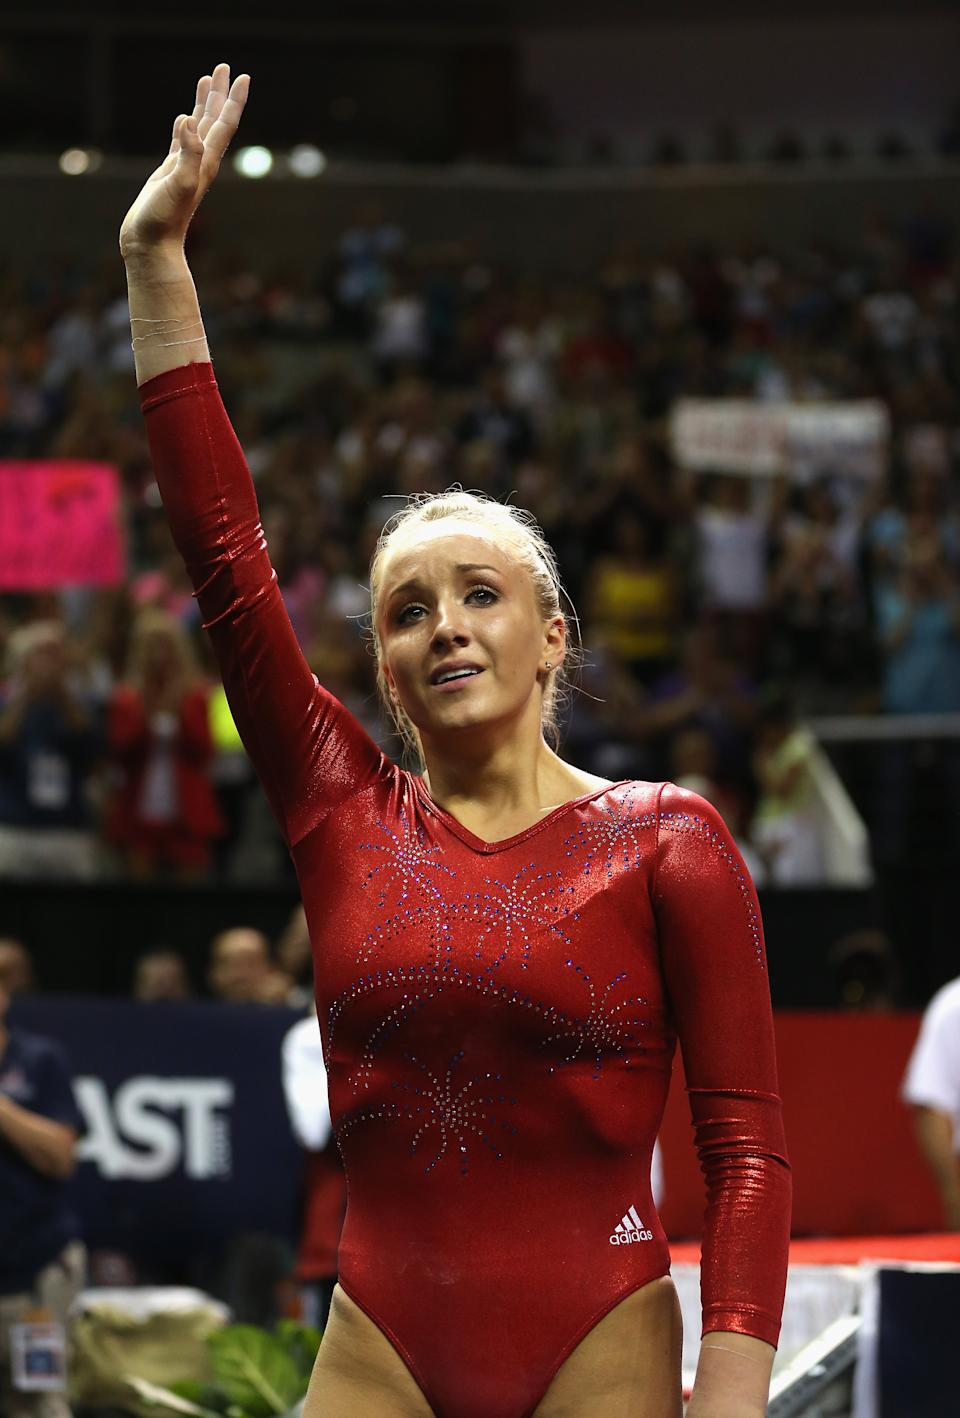 <b>Bowing out</b><br><br>Olympic gold medalist Nastia Liukin tearfully waves to the crowd after competing at the 2012 U.S. Olympic Gymnastics Team Trials on July 1, 2012. Liukin fell hard during her uneven bars routine, essentially putting an end to her hopes of going to London. However, like a true champion, Liukin returned to the bars to complete her performance before graciously saying goodbye to her adoring fans. (Photo by Ezra Shaw/Getty Images)